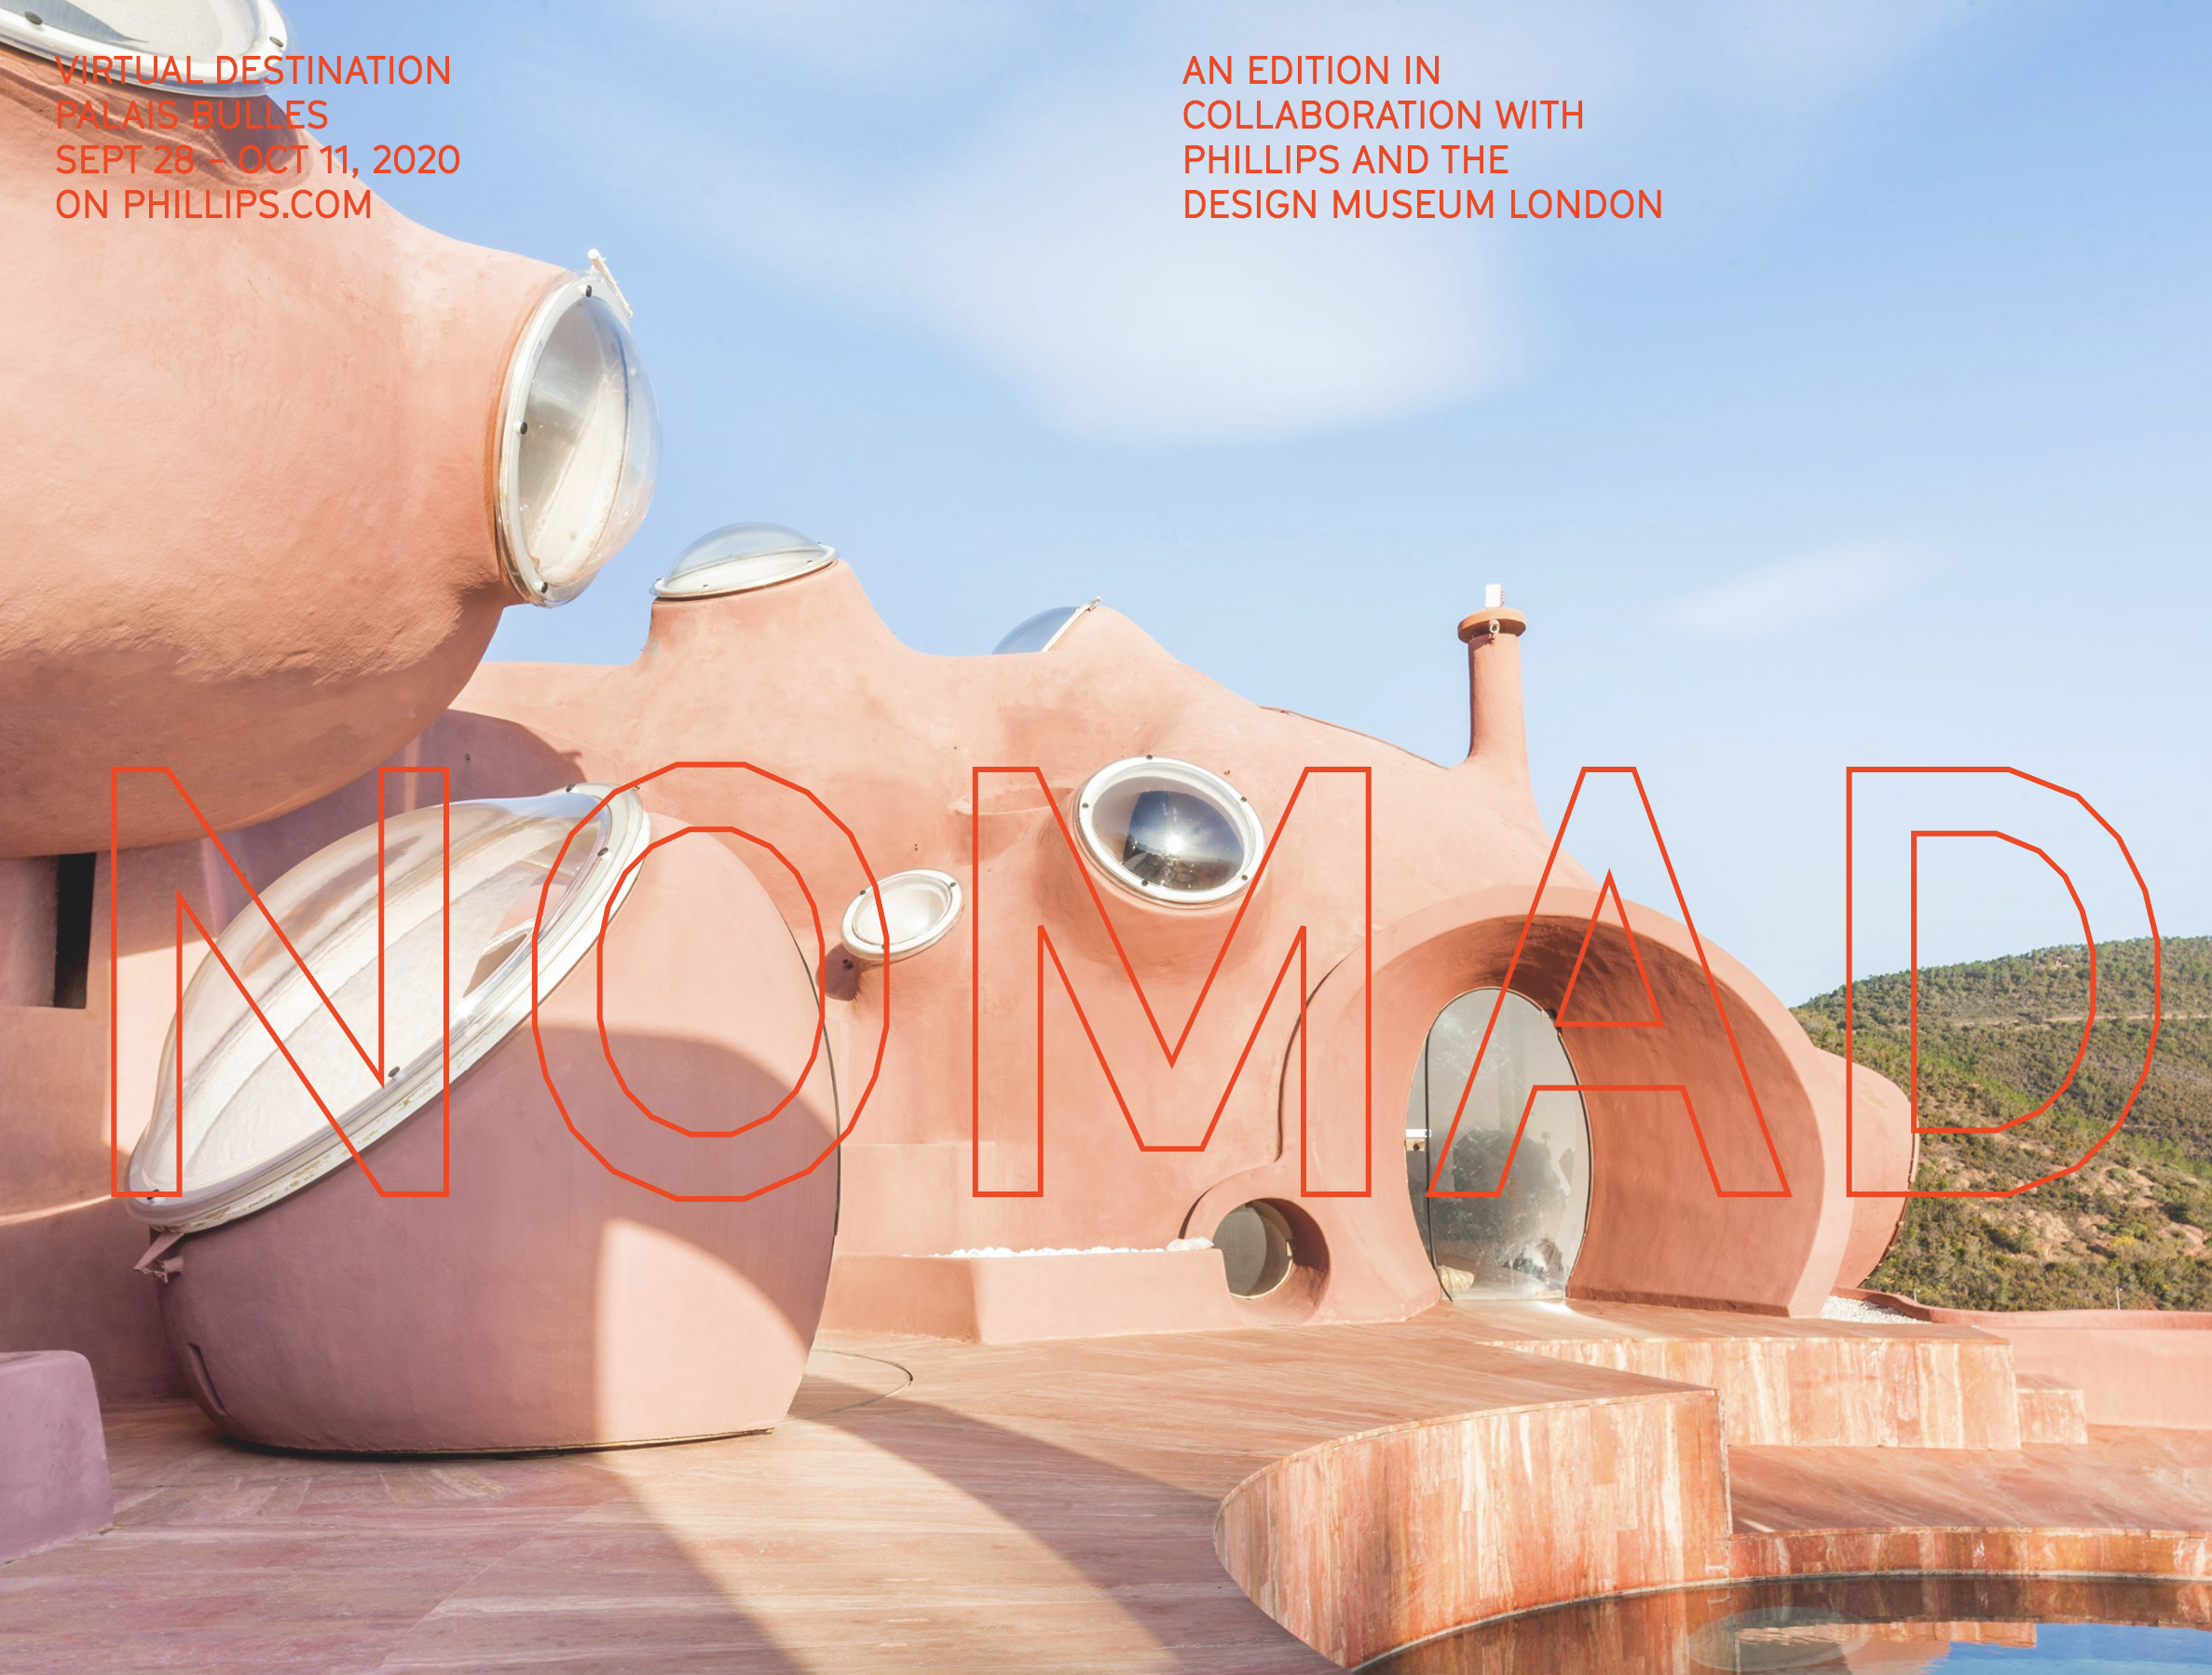 Nomad Virtual Destination Palais Bulles